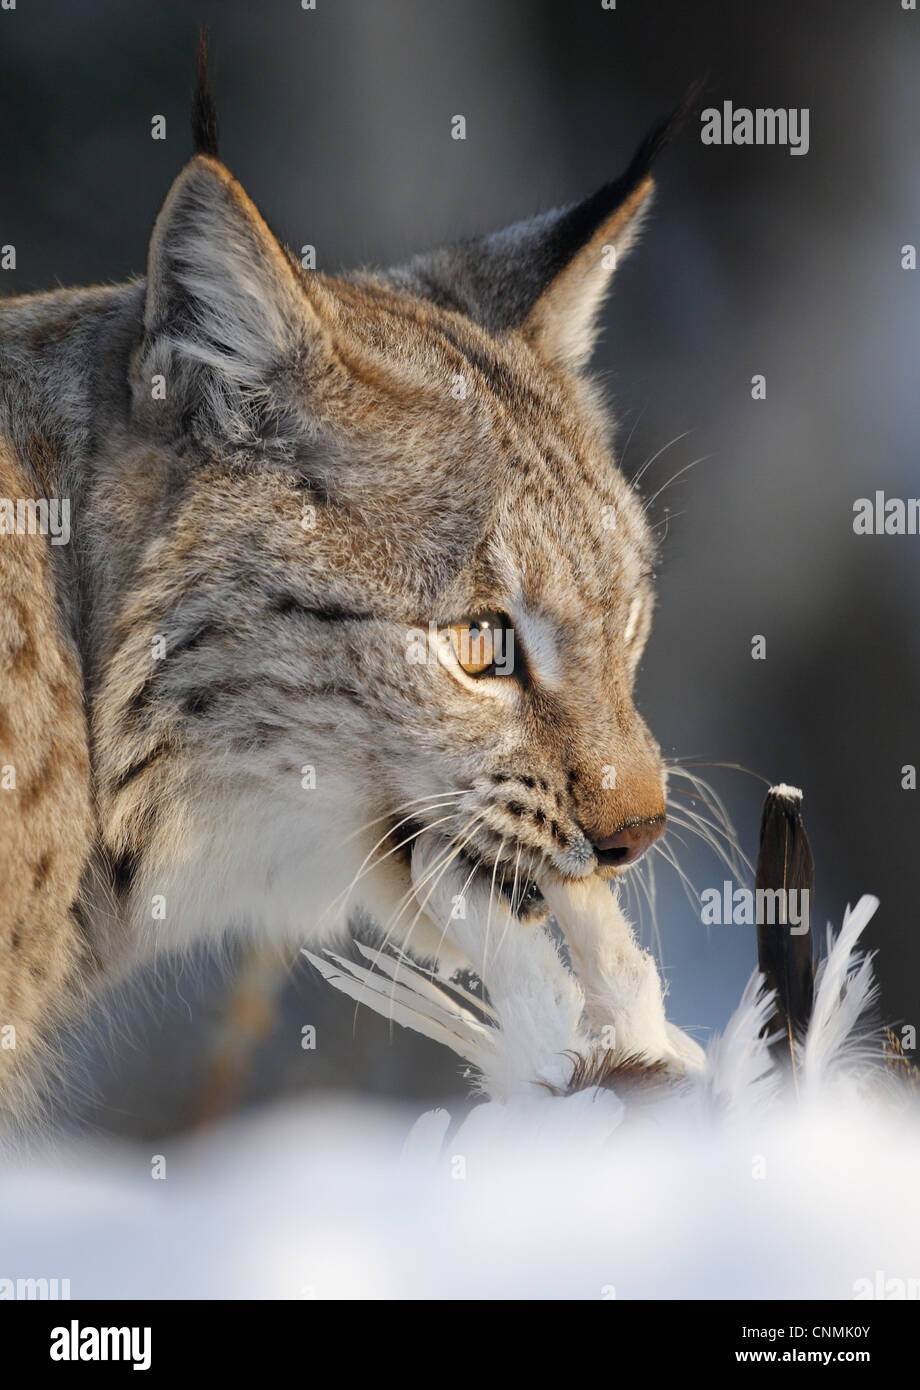 Eurasian Lynx (Lynx lynx) adult, close-up of head, feeding on Rock Ptarmigan (Lagopus mutus) prey in snow, Norway, Stock Photo